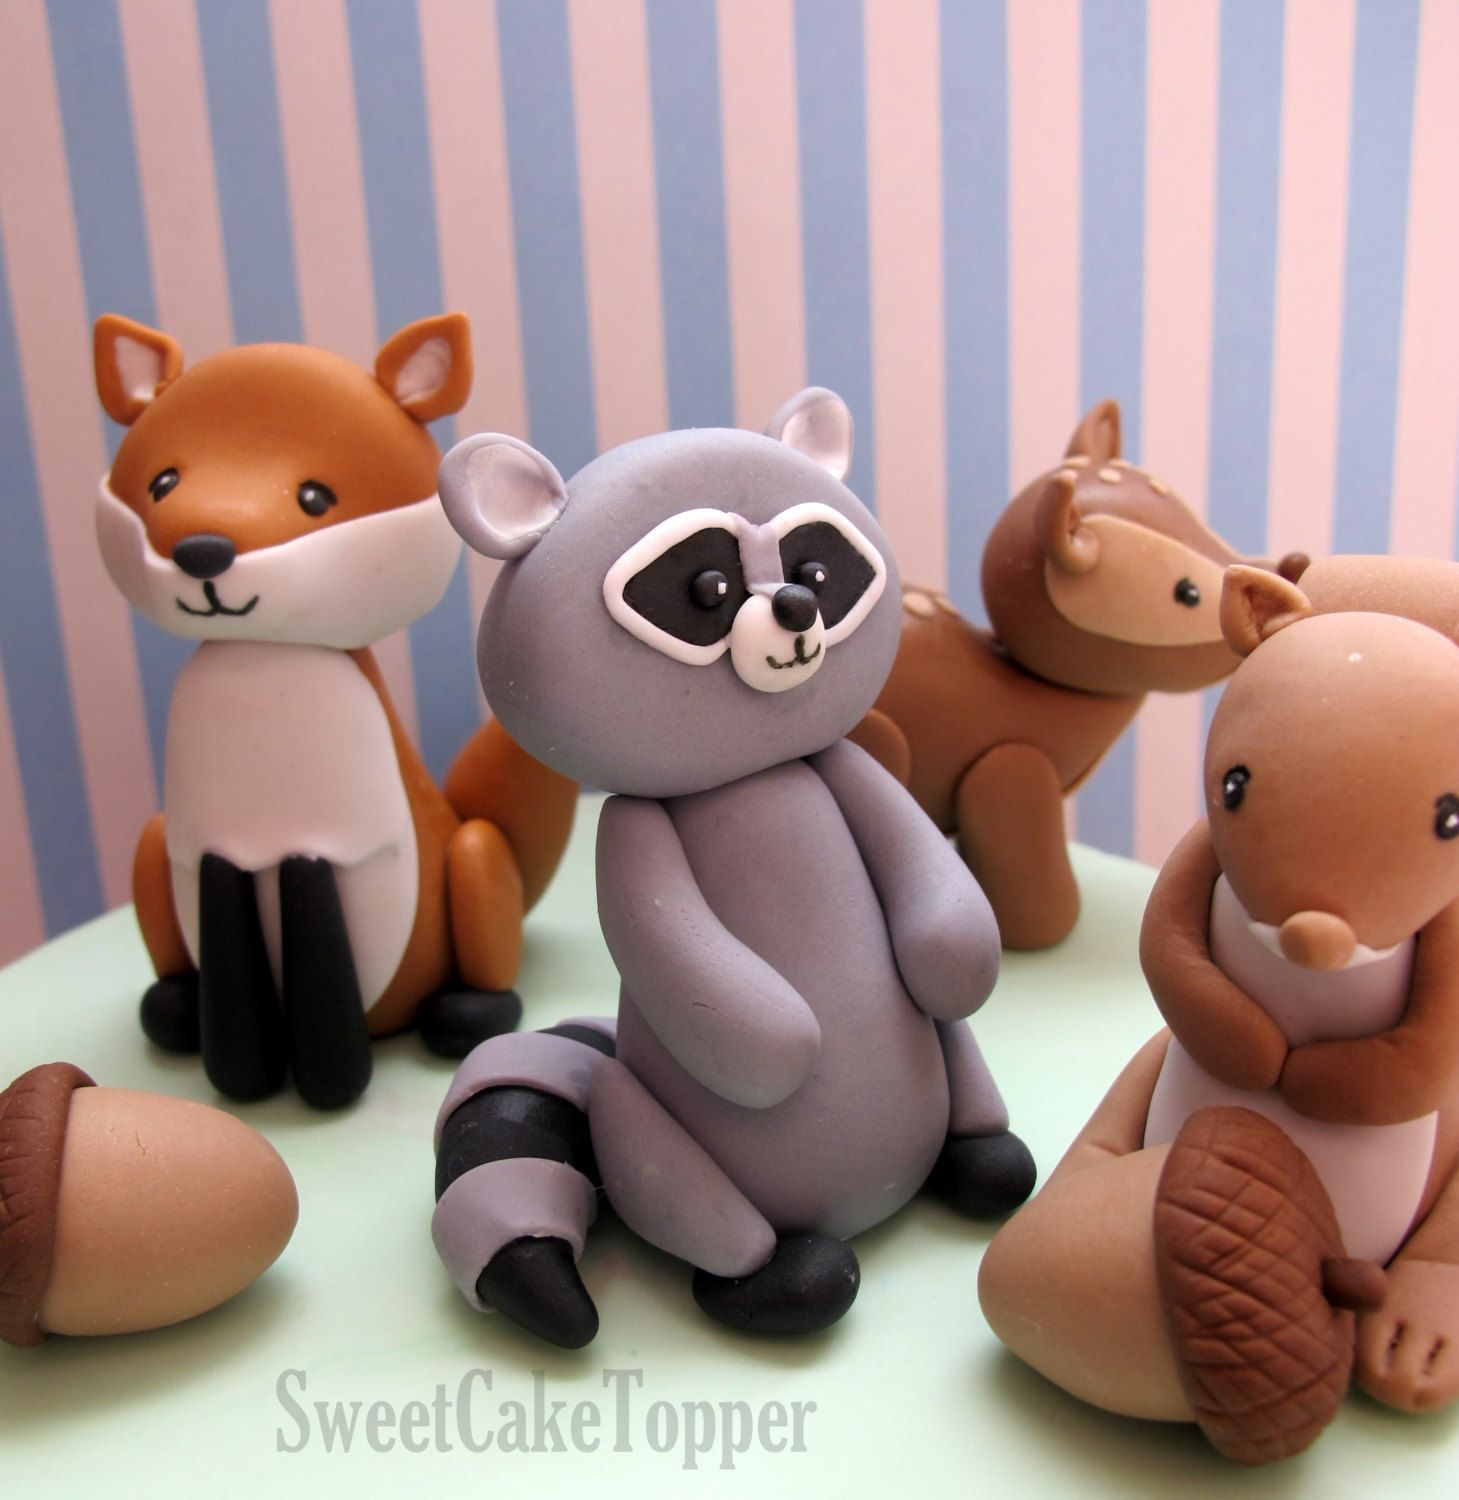 Tiger Figurines Cake Toppers,Miniature Toys Cake Toppers Bear,Lion 6 PCS Forest Animals Figures,Woodland Creatures Figurines,Deer Wolf